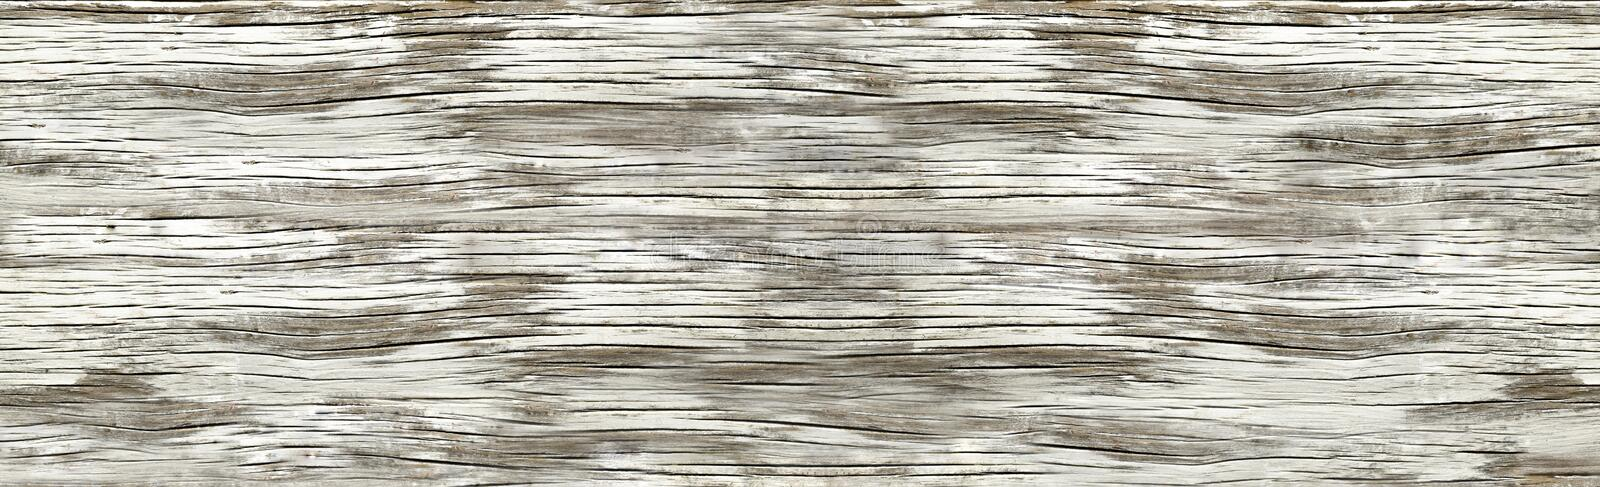 Aged wood. Wood aged and faded by the passage of time royalty free stock photography